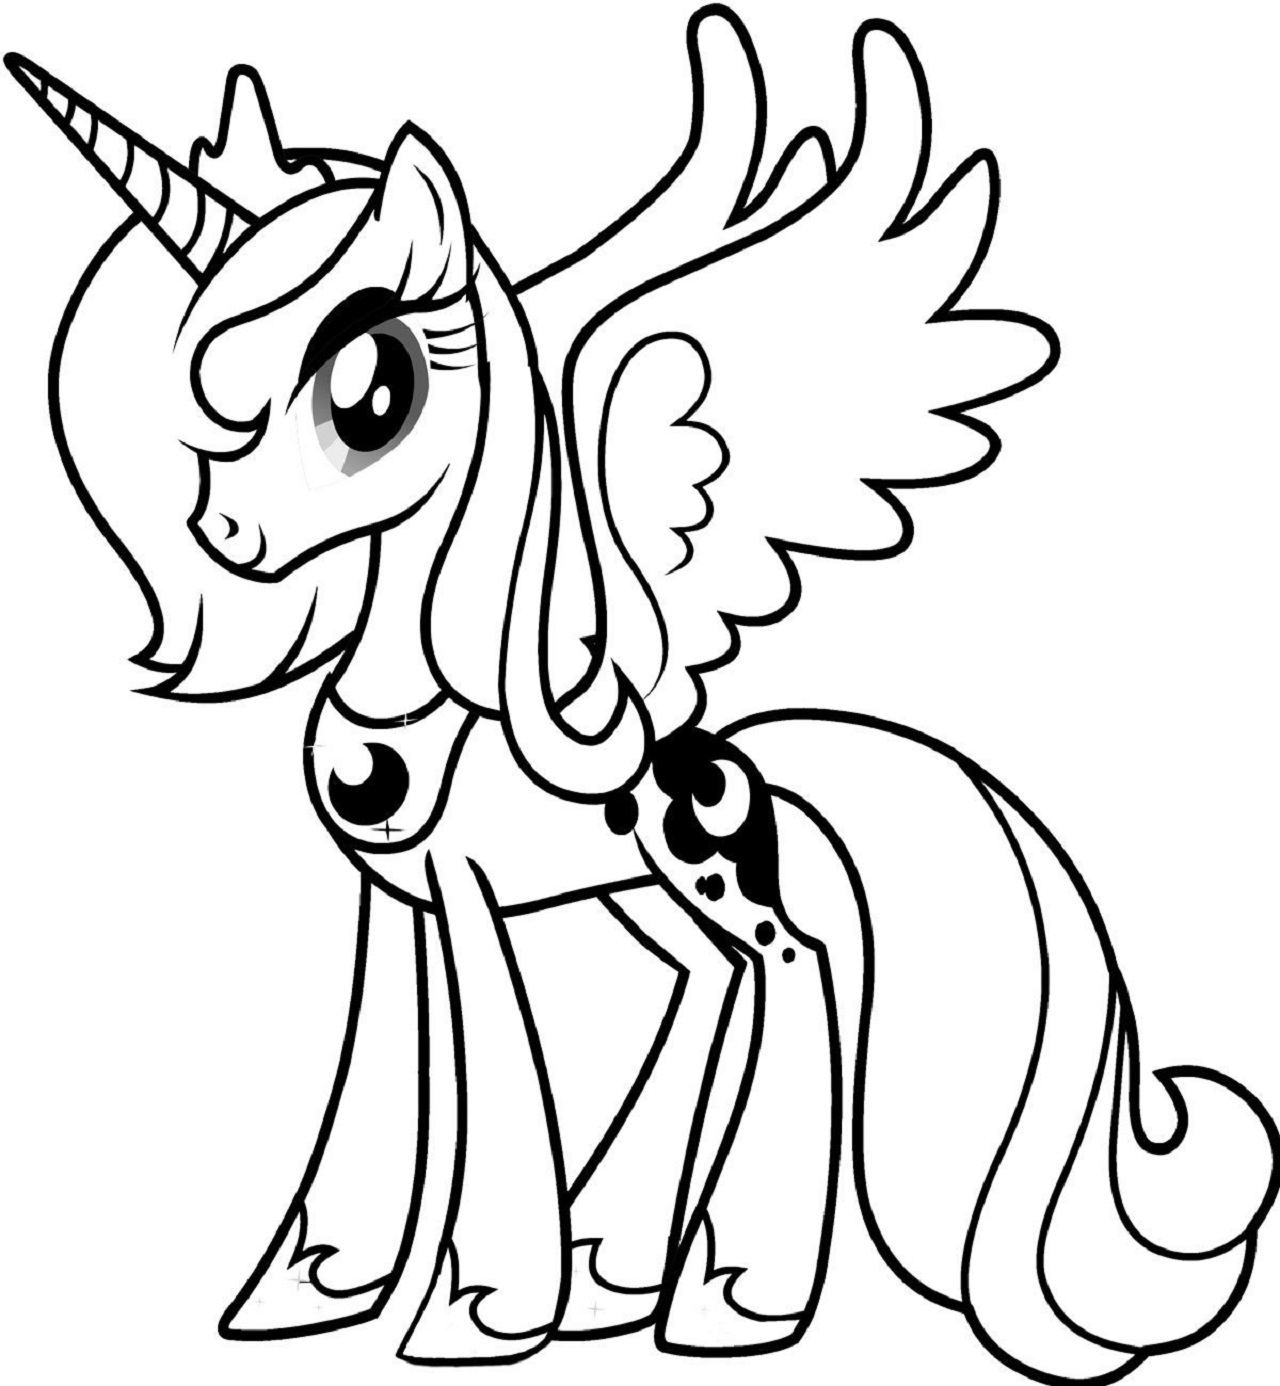 This is a picture of Mesmerizing Pony Coloring Picture